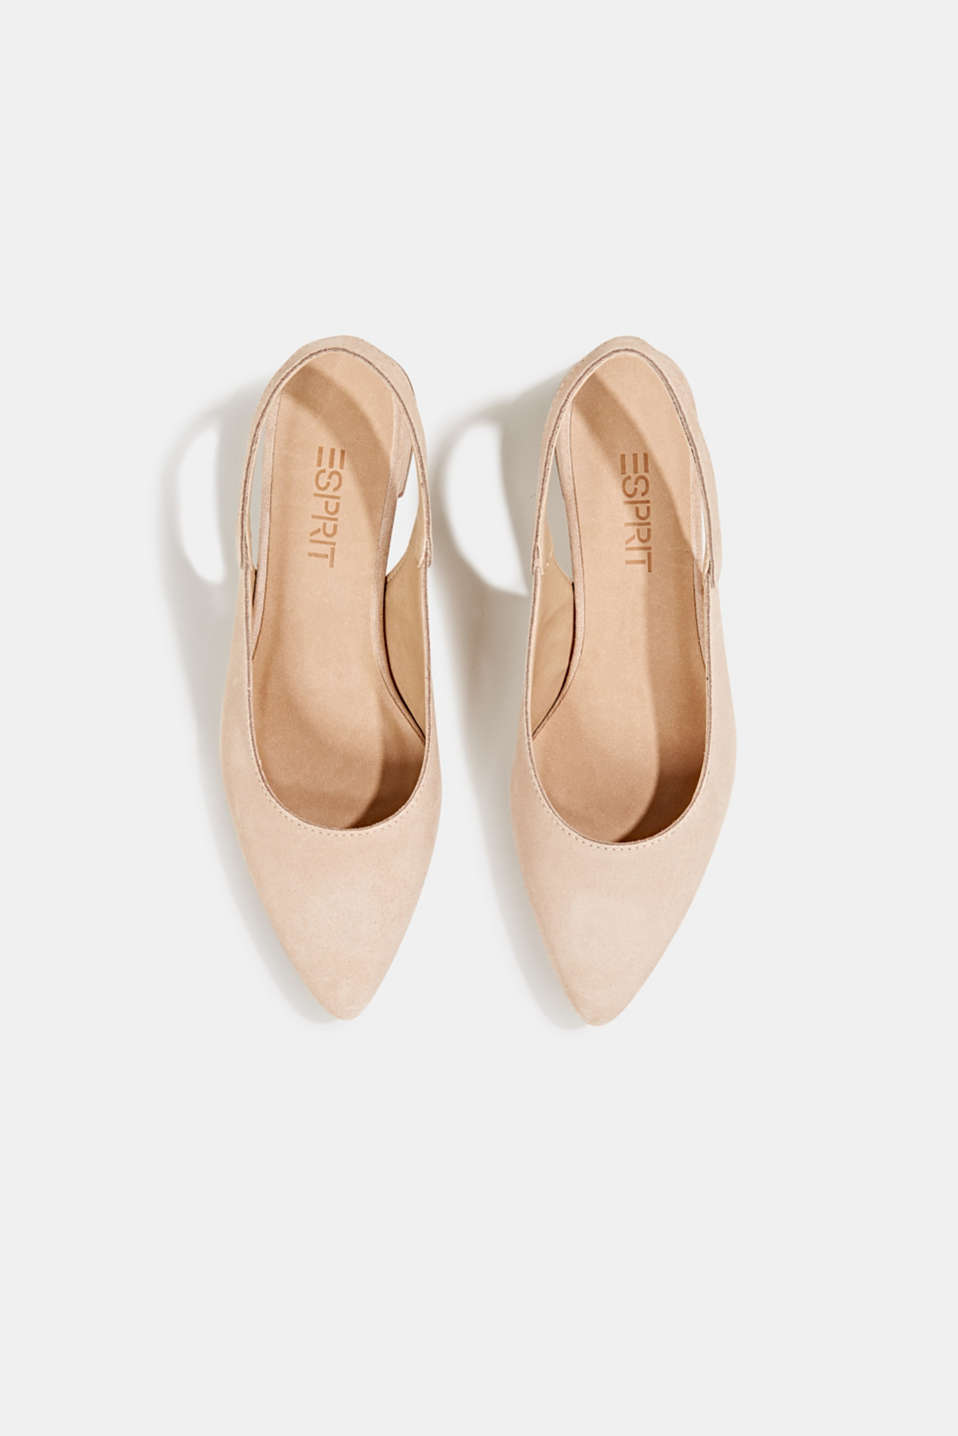 Leather sling back court shoes, NUDE, detail image number 1